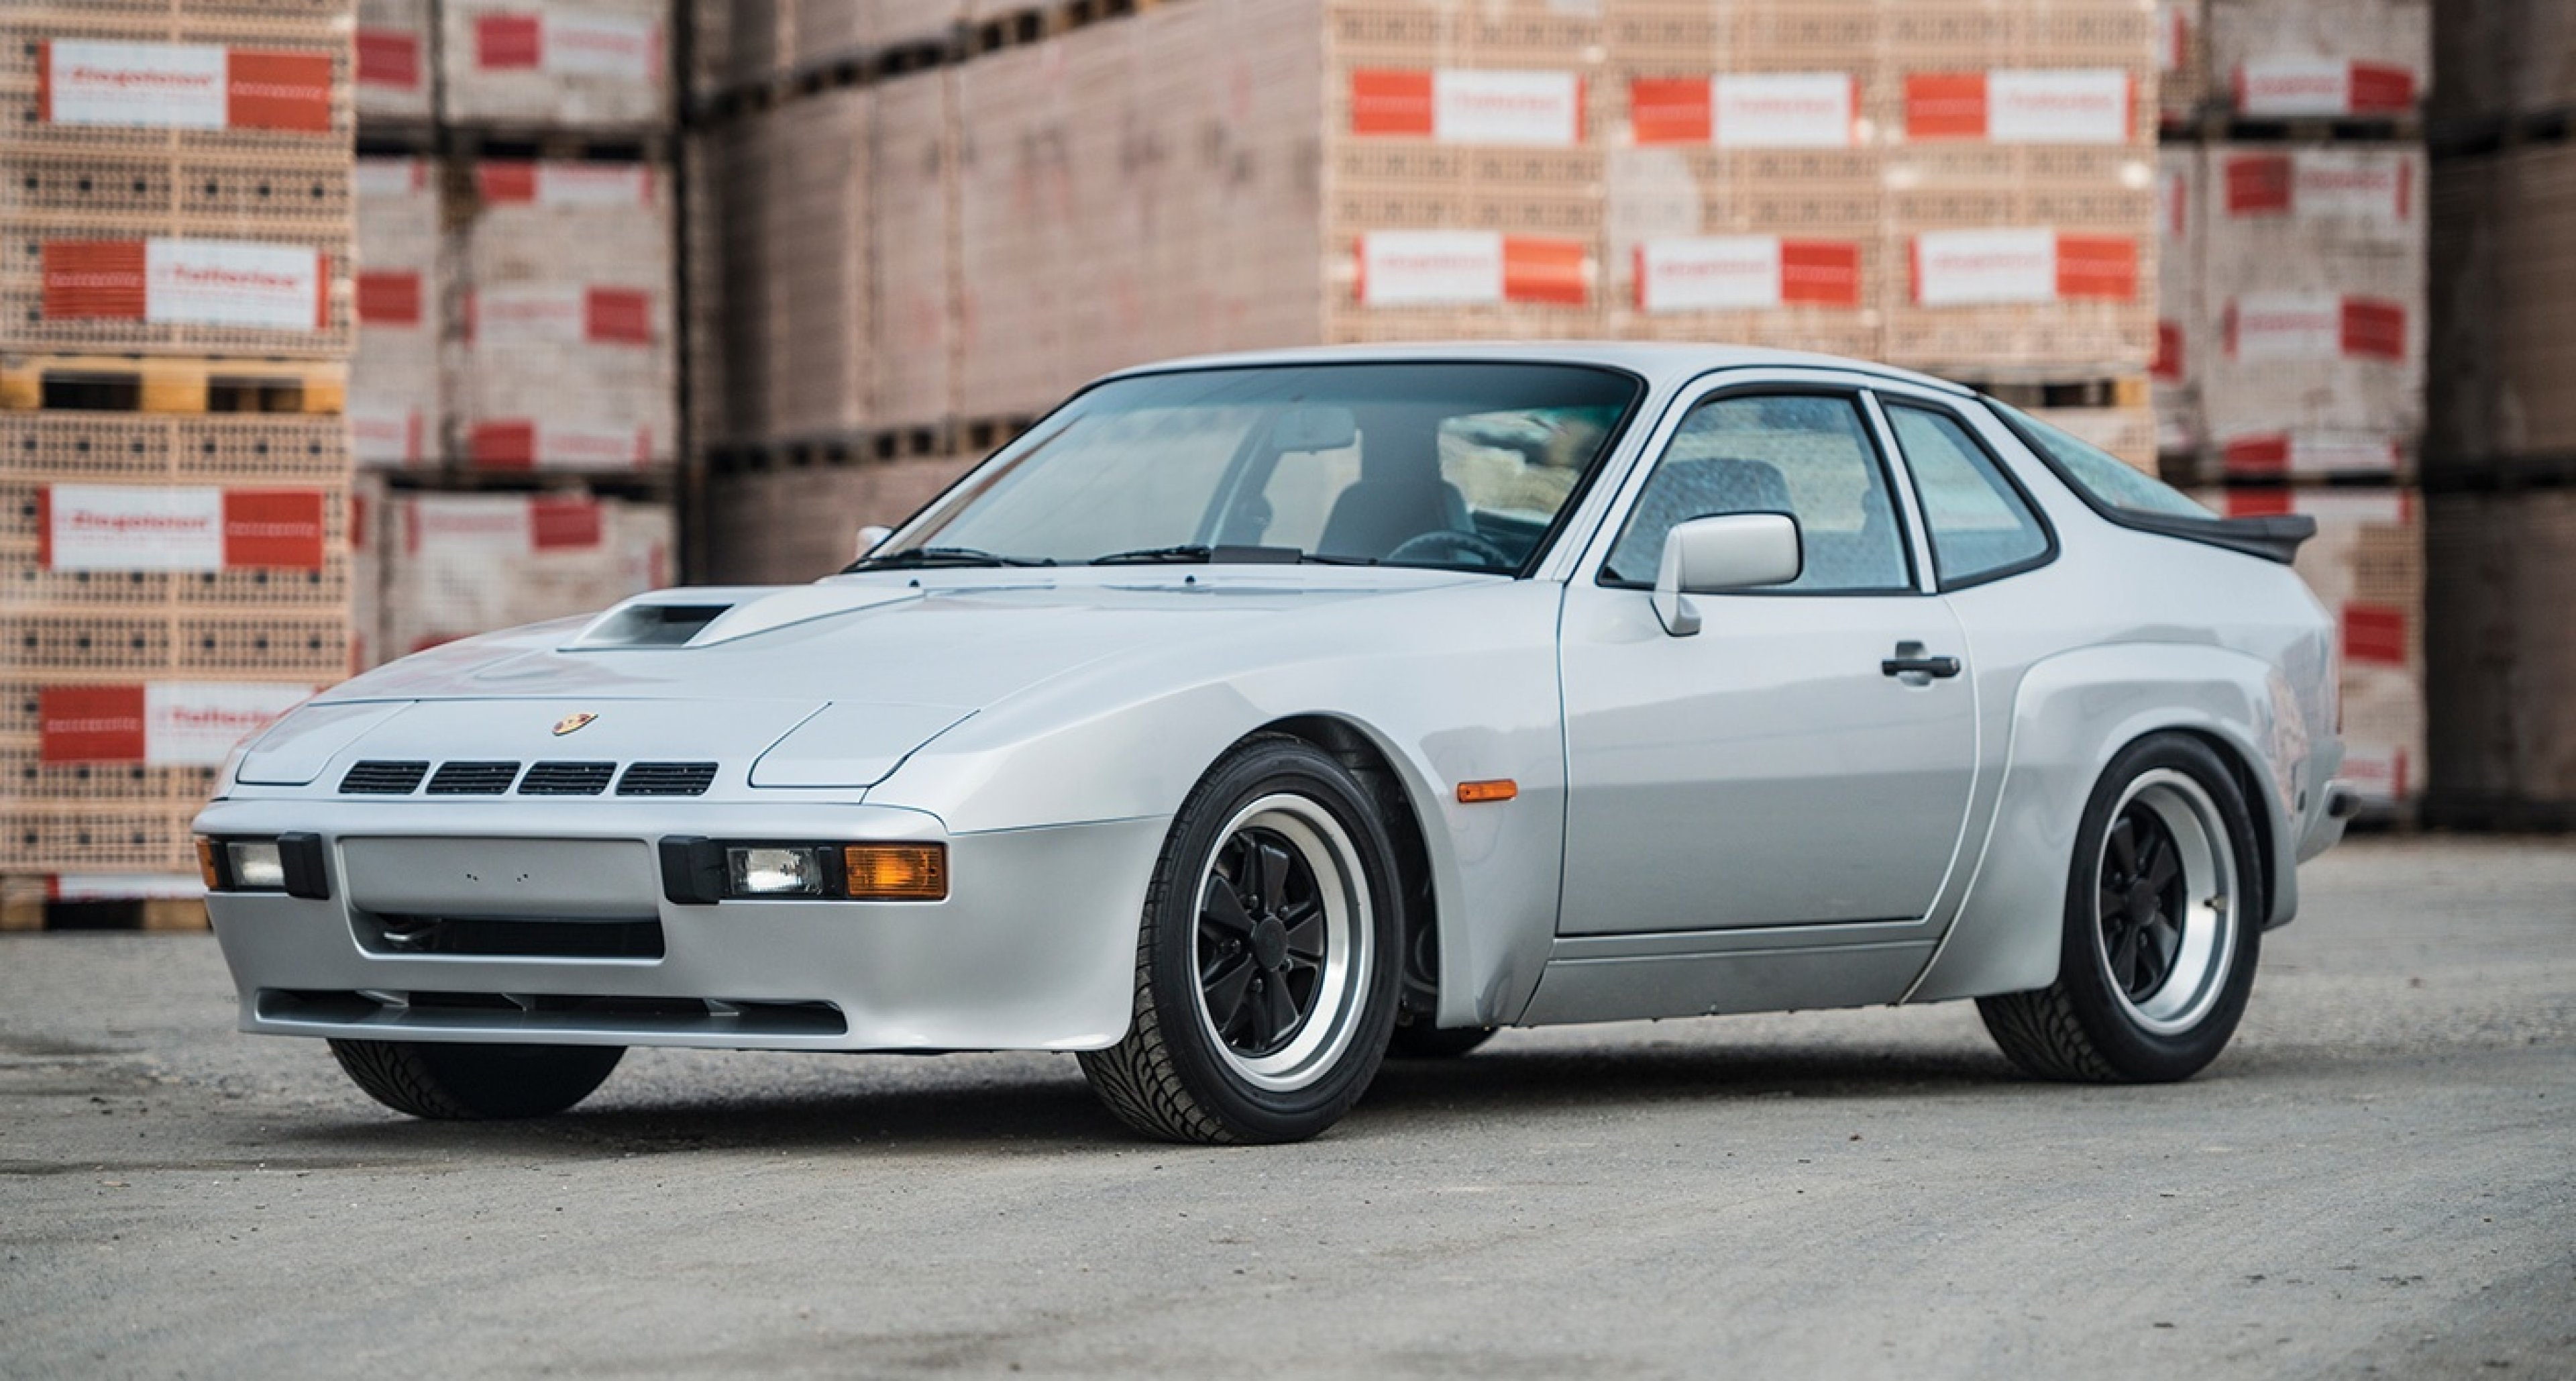 Considering a front-engined classic Porsche? You better be